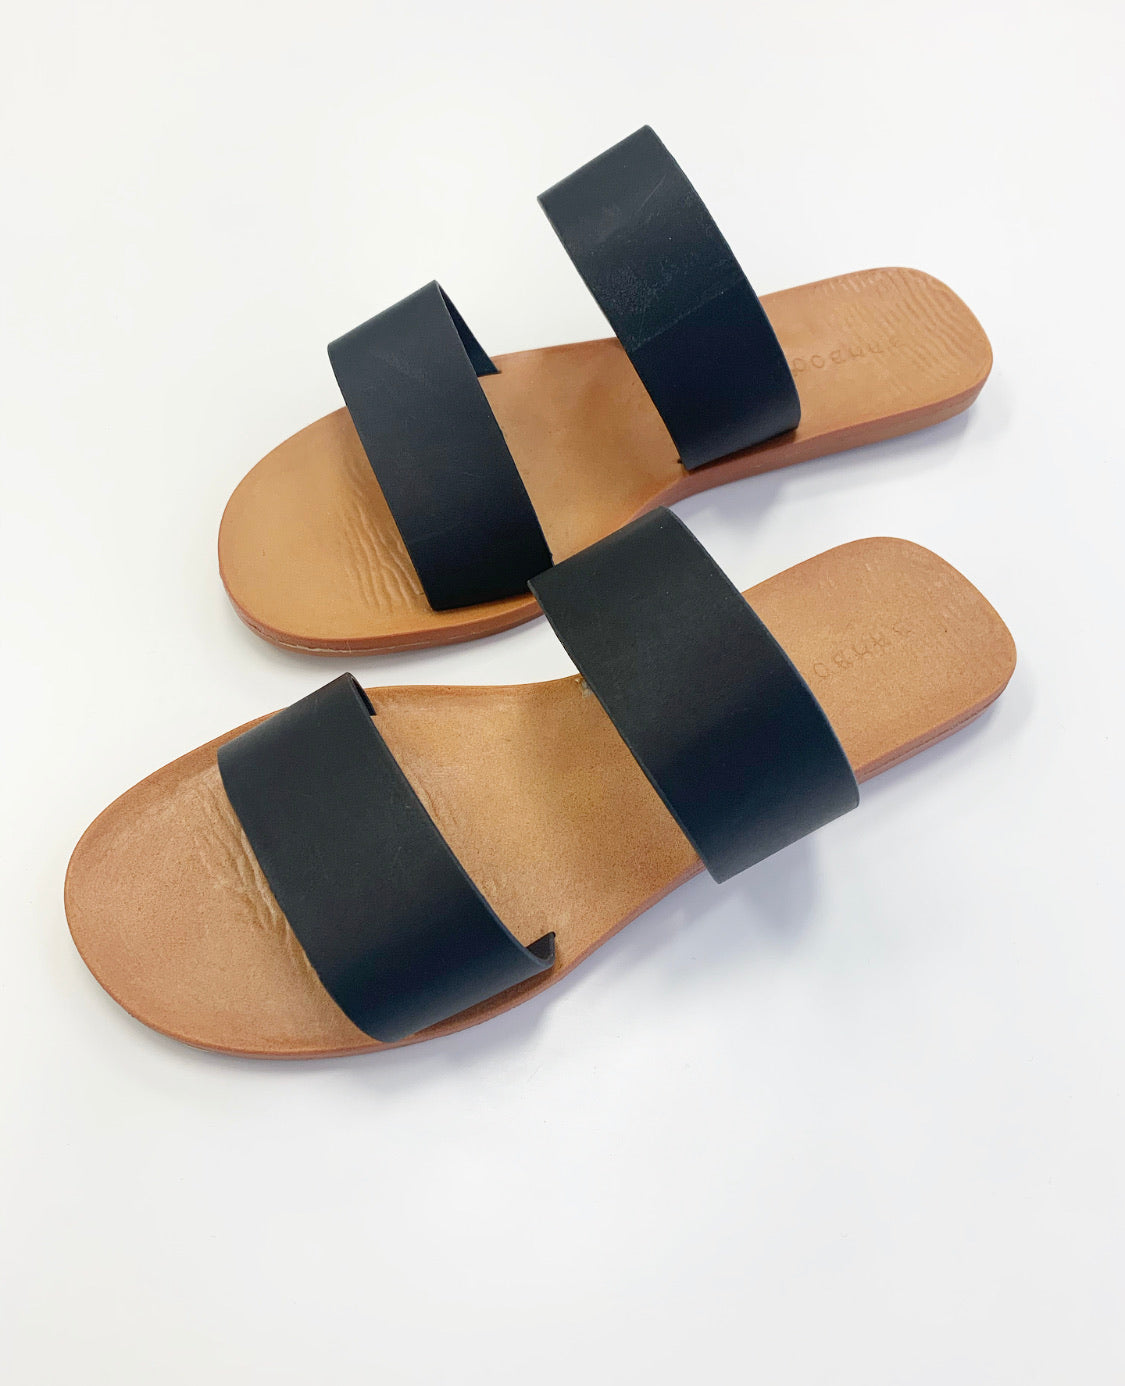 THE MOONBEAM SANDAL IN BLACK